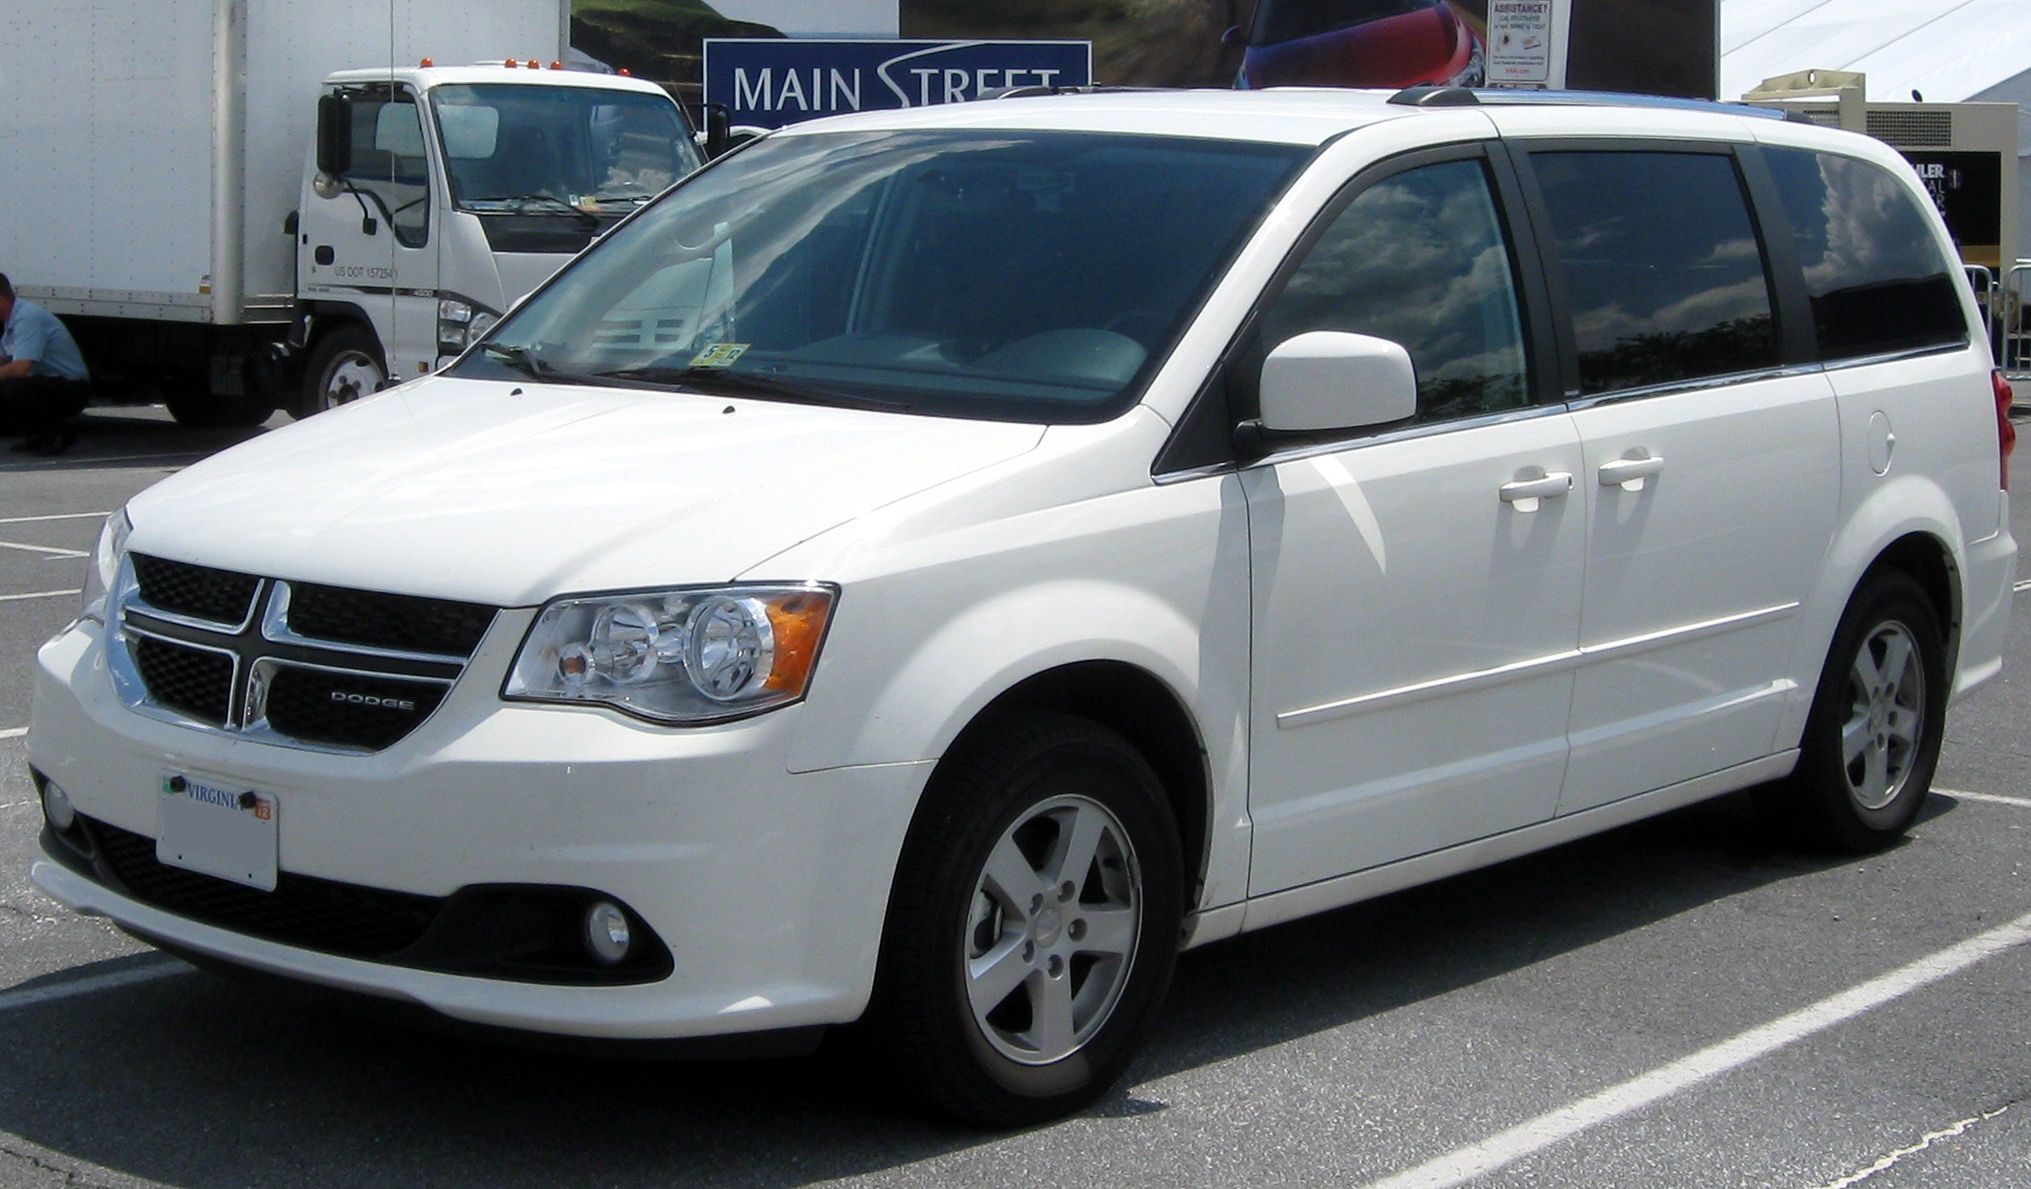 Dodge caravan is one of the best cars when its comes to safety features as it